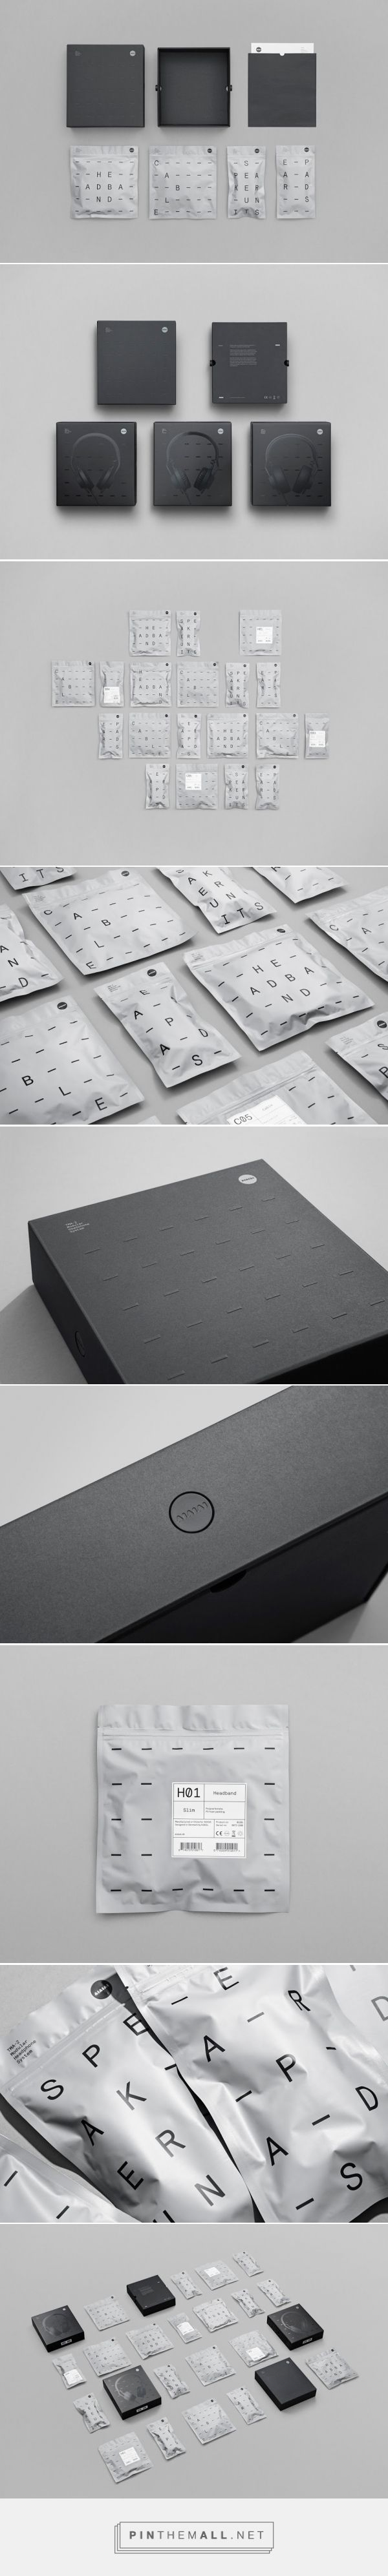 TMA-2 Modular Headphones Packaging System designed by Kilo Design (Denmark)…